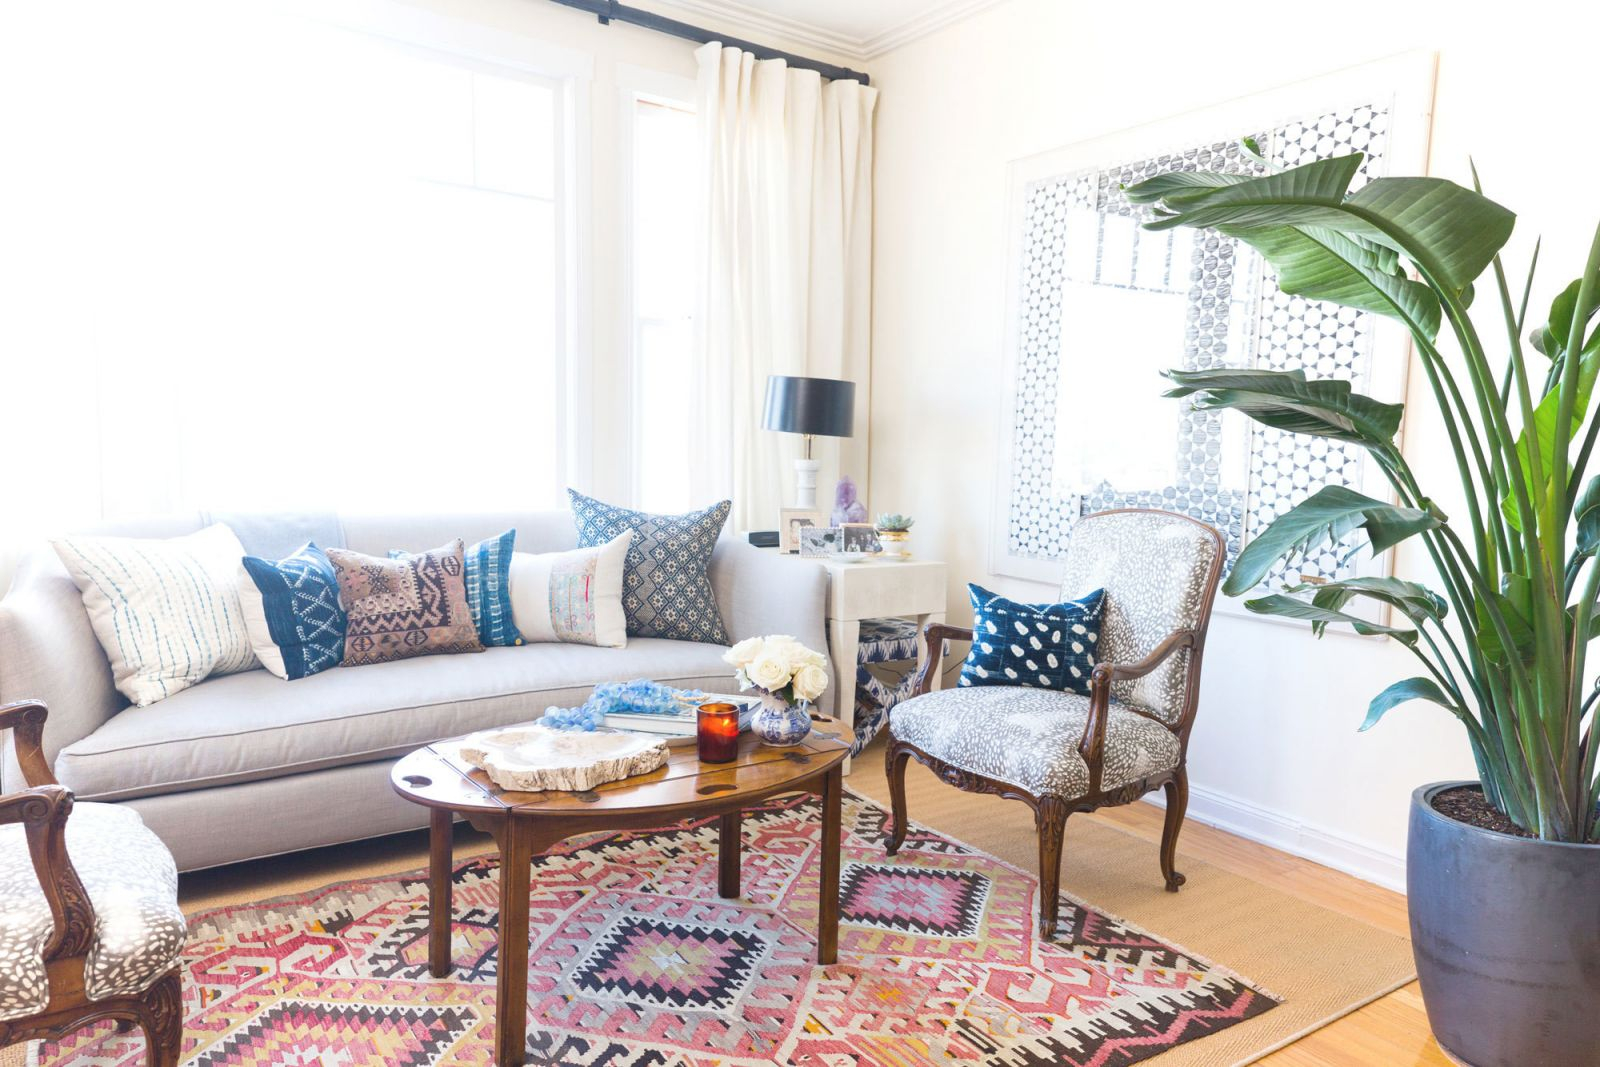 Small Space Living Hacks That Will Make Your Life So Much with Furniture For Small Spaces Living Room